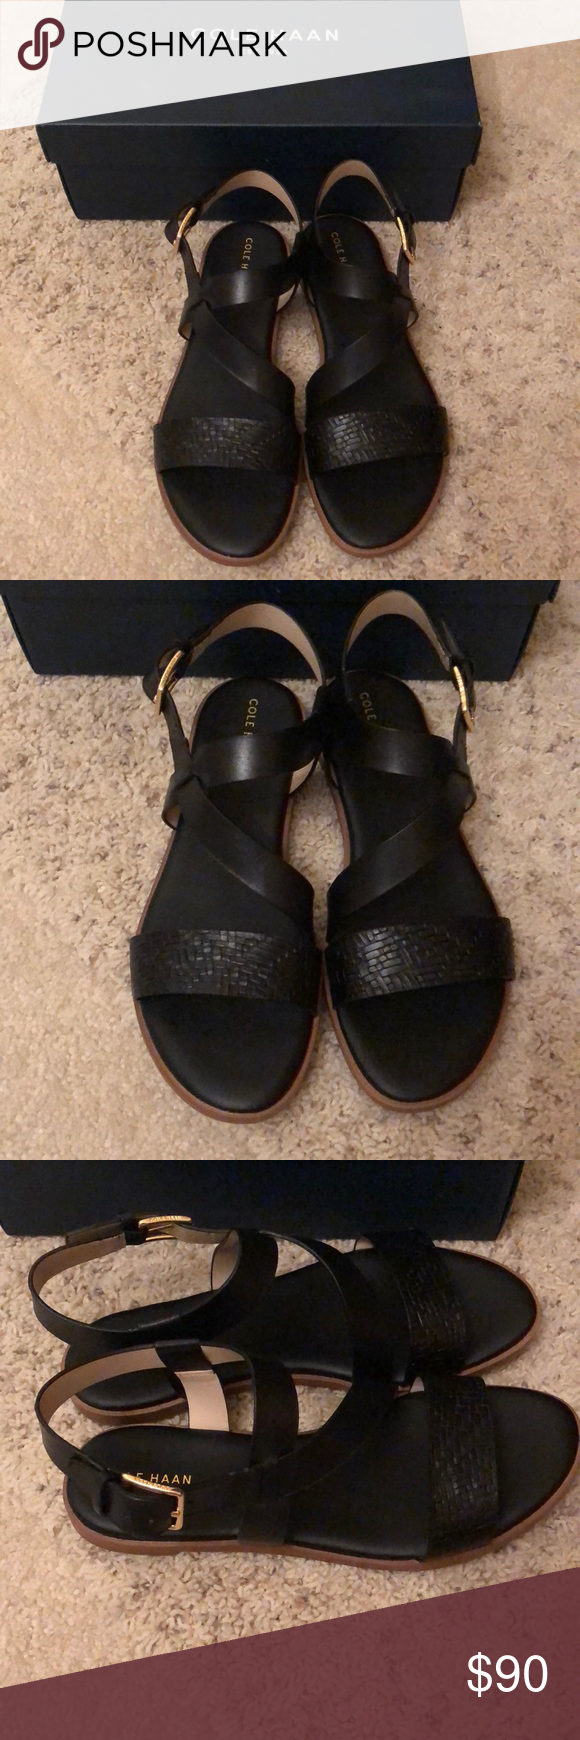 Authentic Brand New Cole Haan Sandals